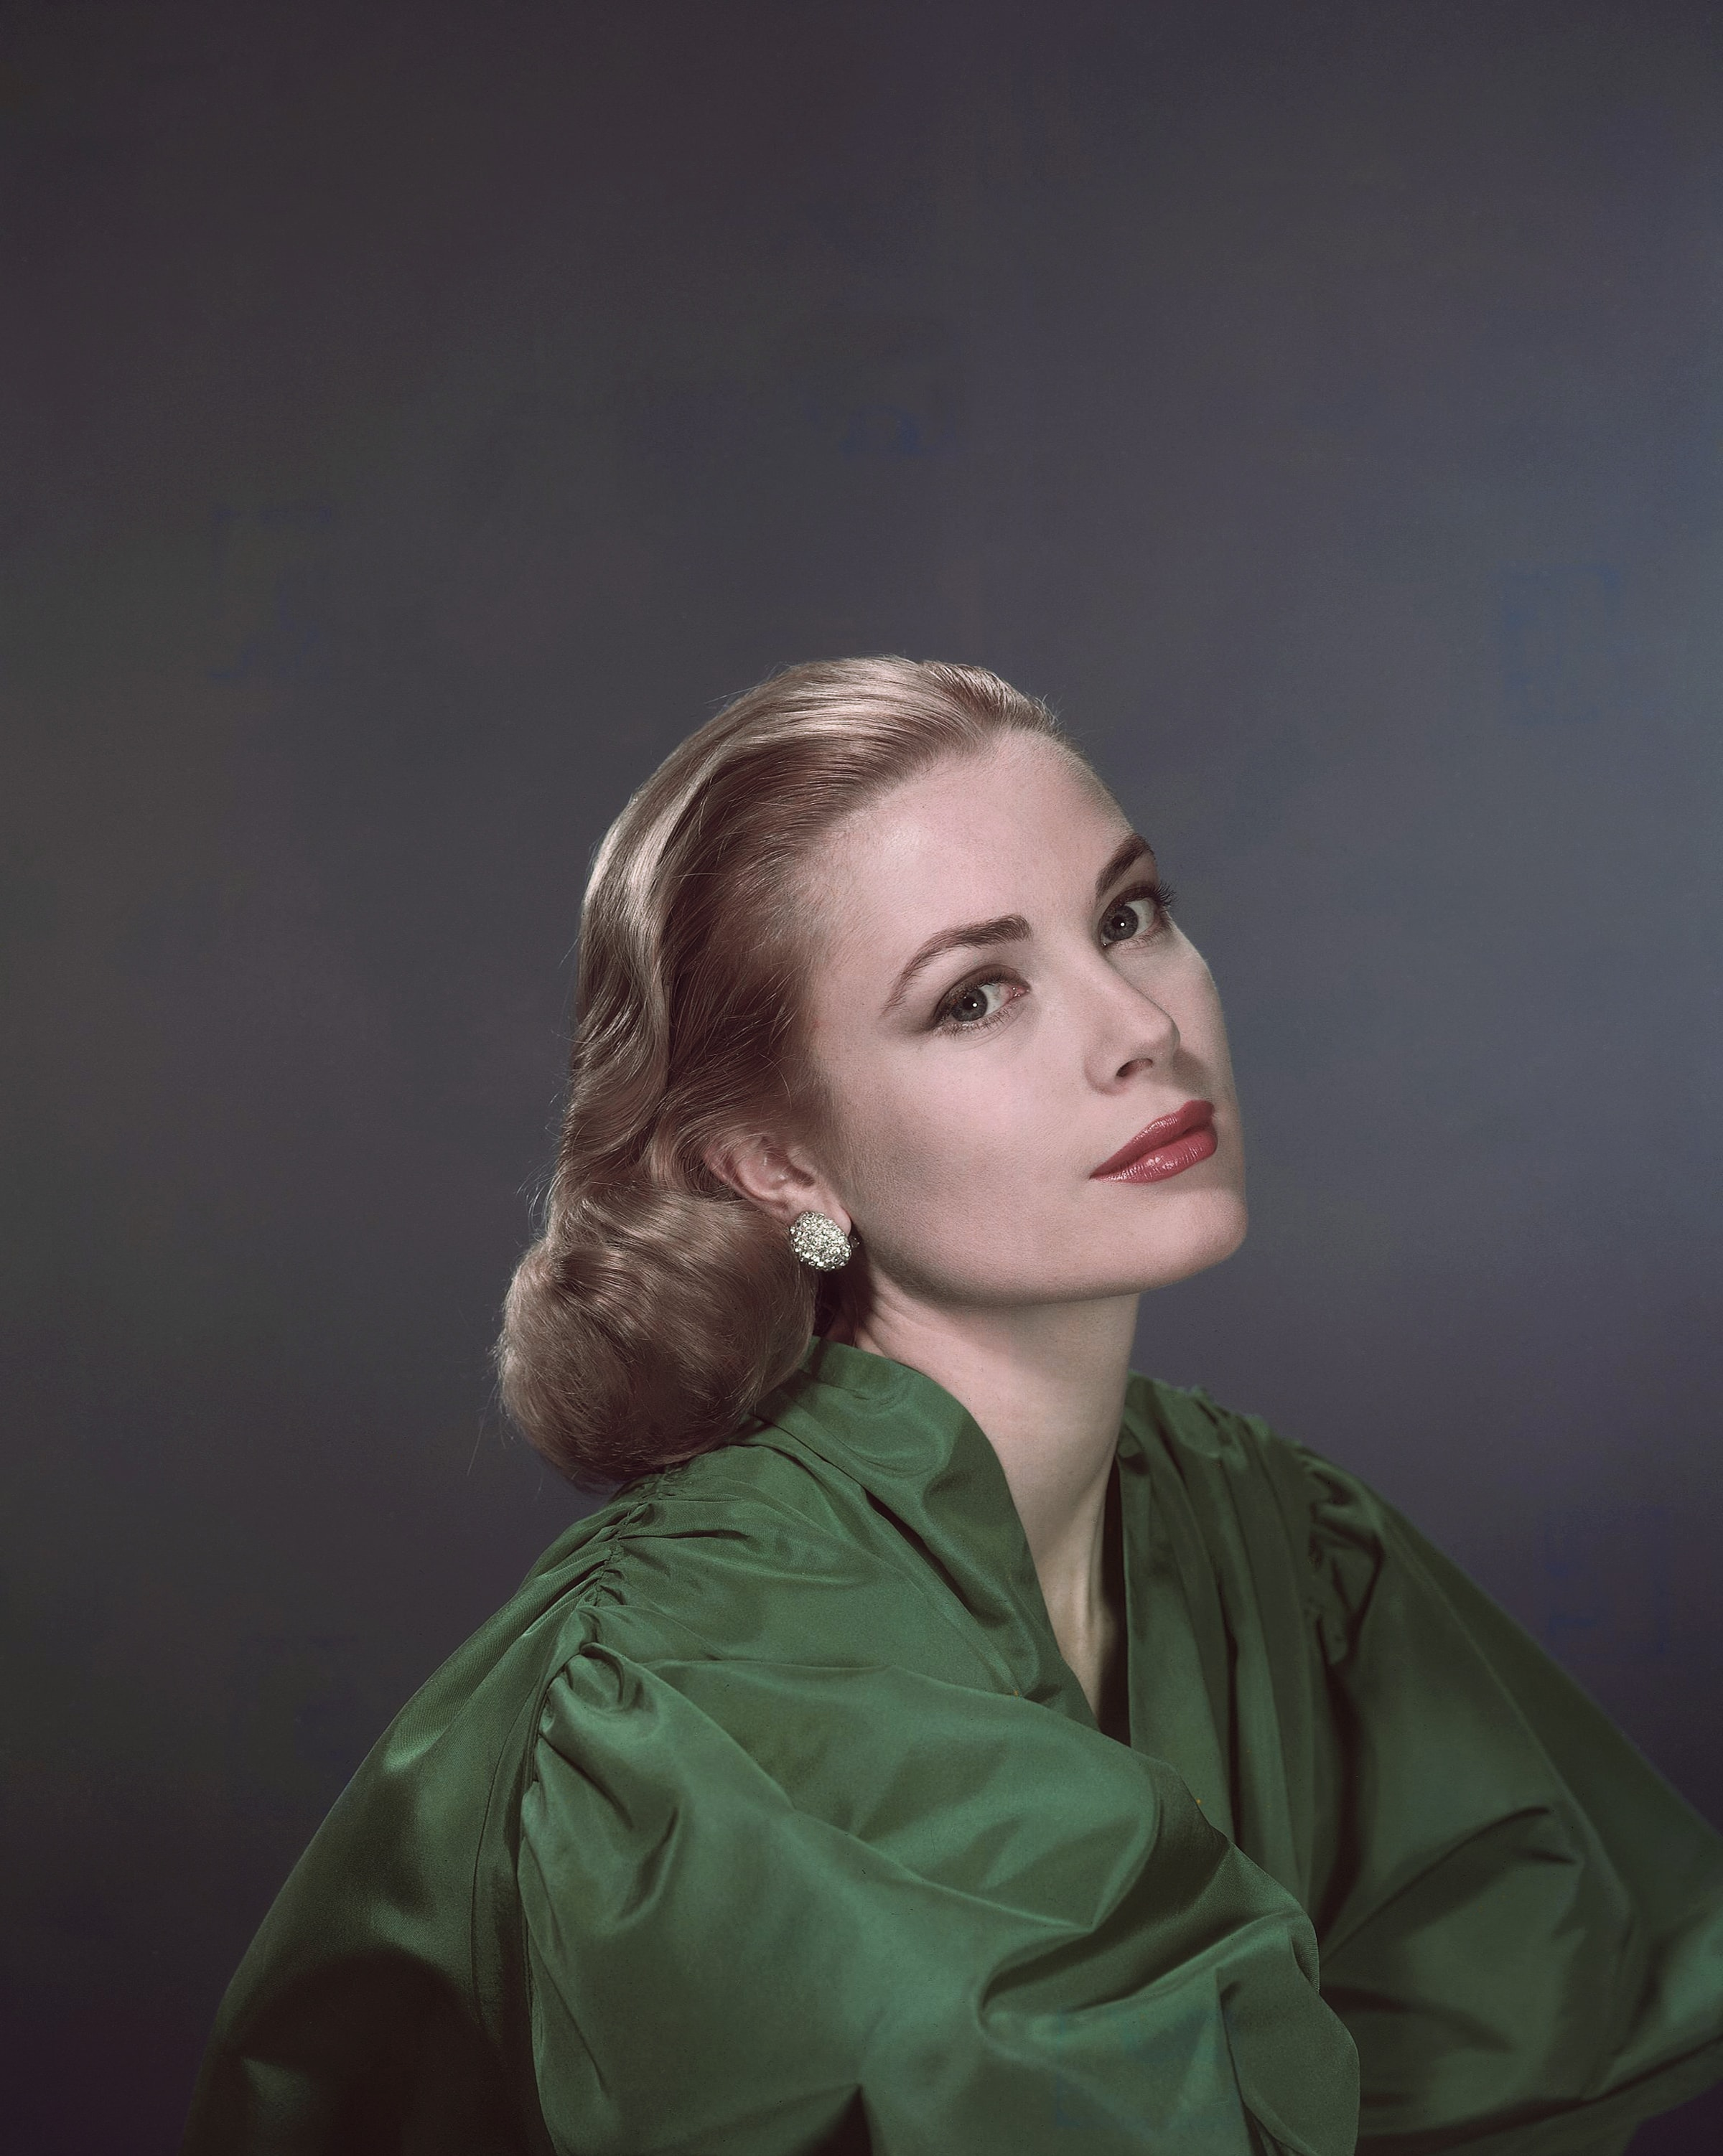 Grace Kelly For mobile